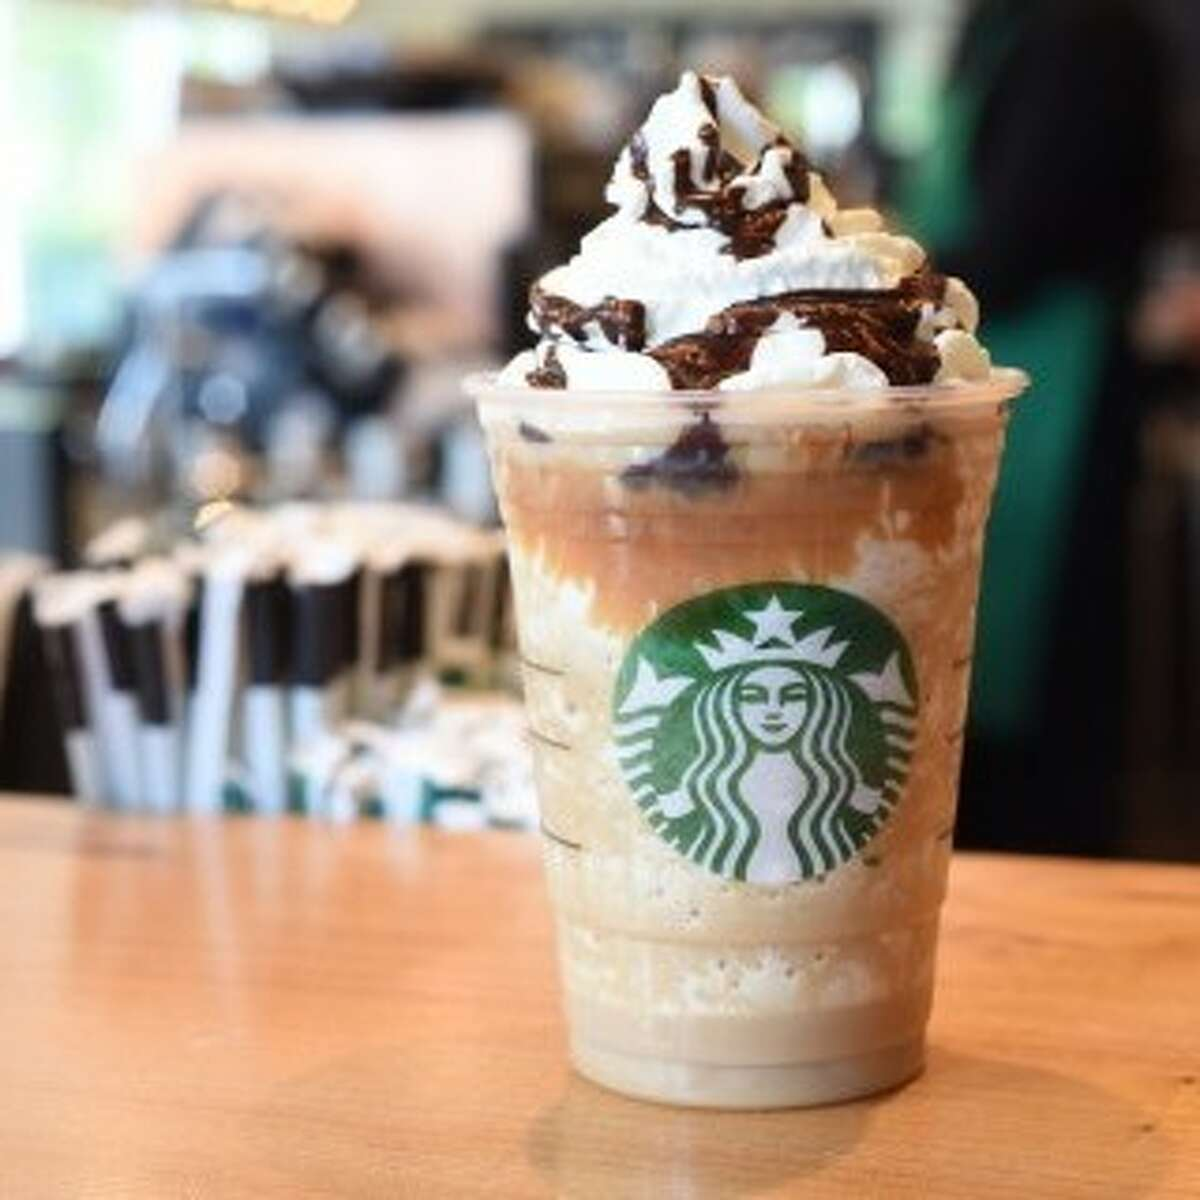 A Starbucks hot chocolate drink, pictured in a file photo. A Seattle-area woman now claims she was sickened after drinking a similar beverage spiked with industrial cleaner.